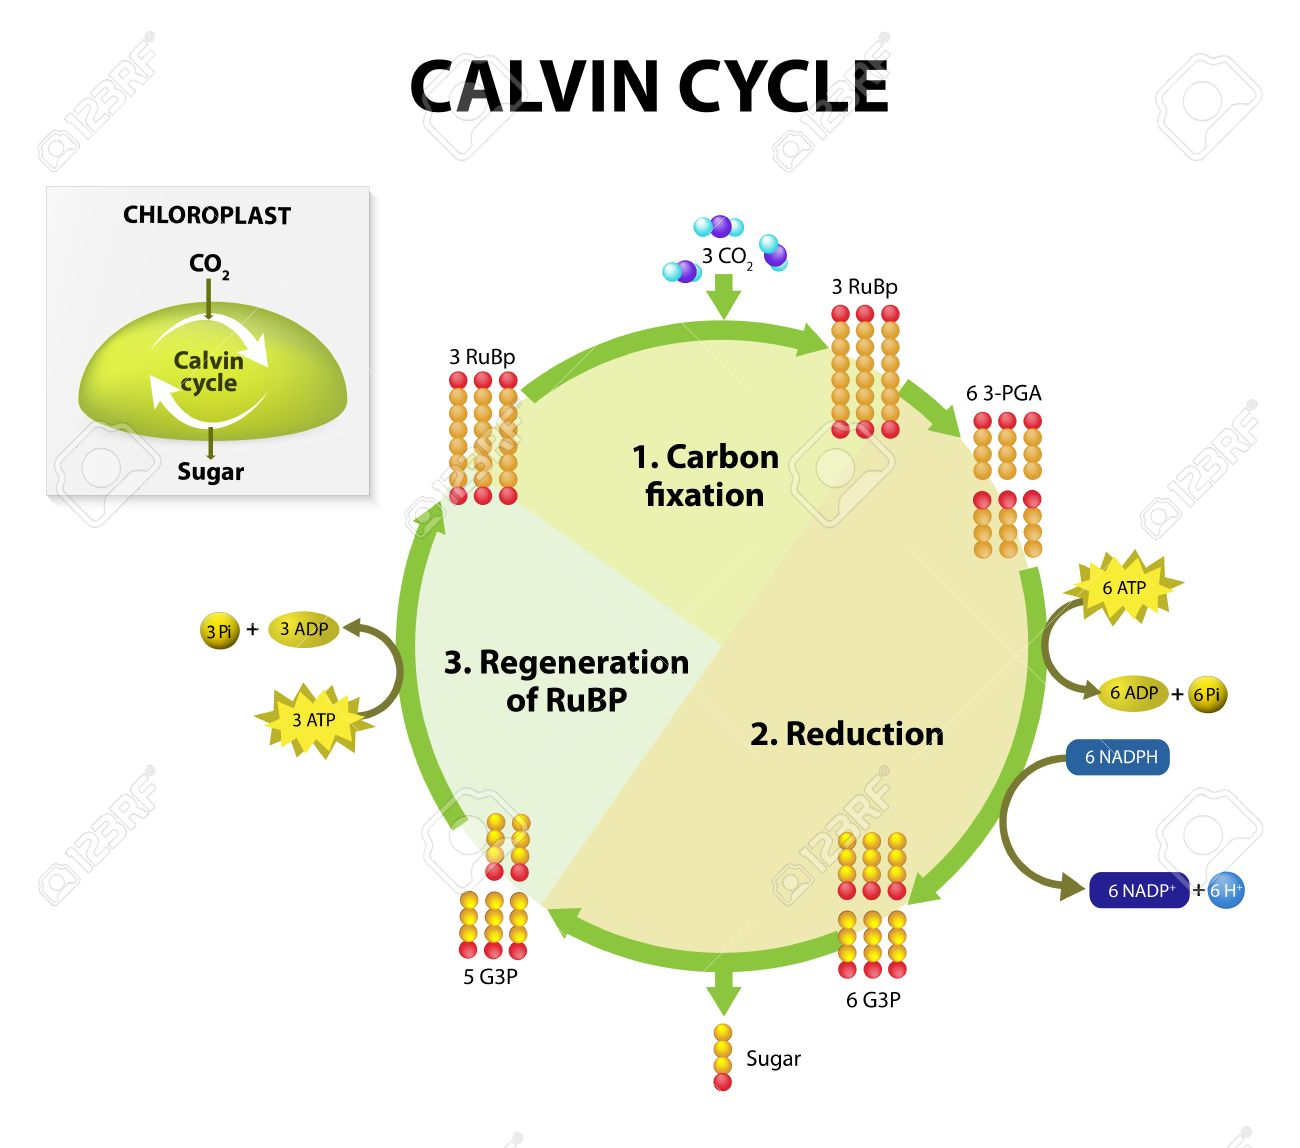 Photosynthesis calvin cycle in chloroplast calvin cycle makes photosynthesis calvin cycle in chloroplast calvin cycle makes sugar from carbon dioxide this ccuart